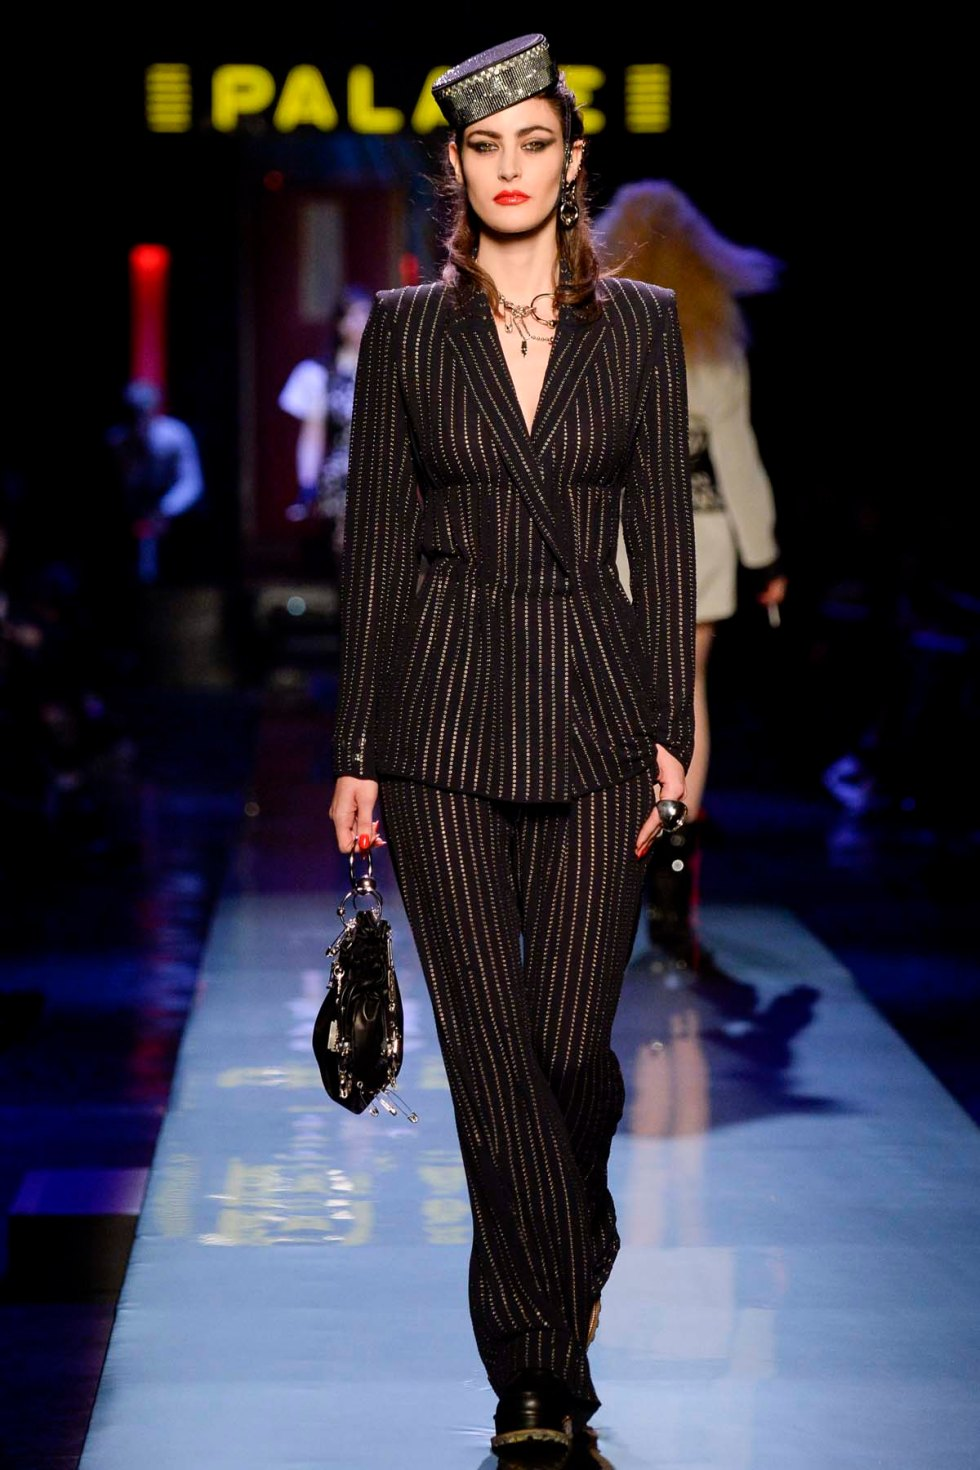 Jean-Paul-Gaultier-couture-spring-2016-pfw-4